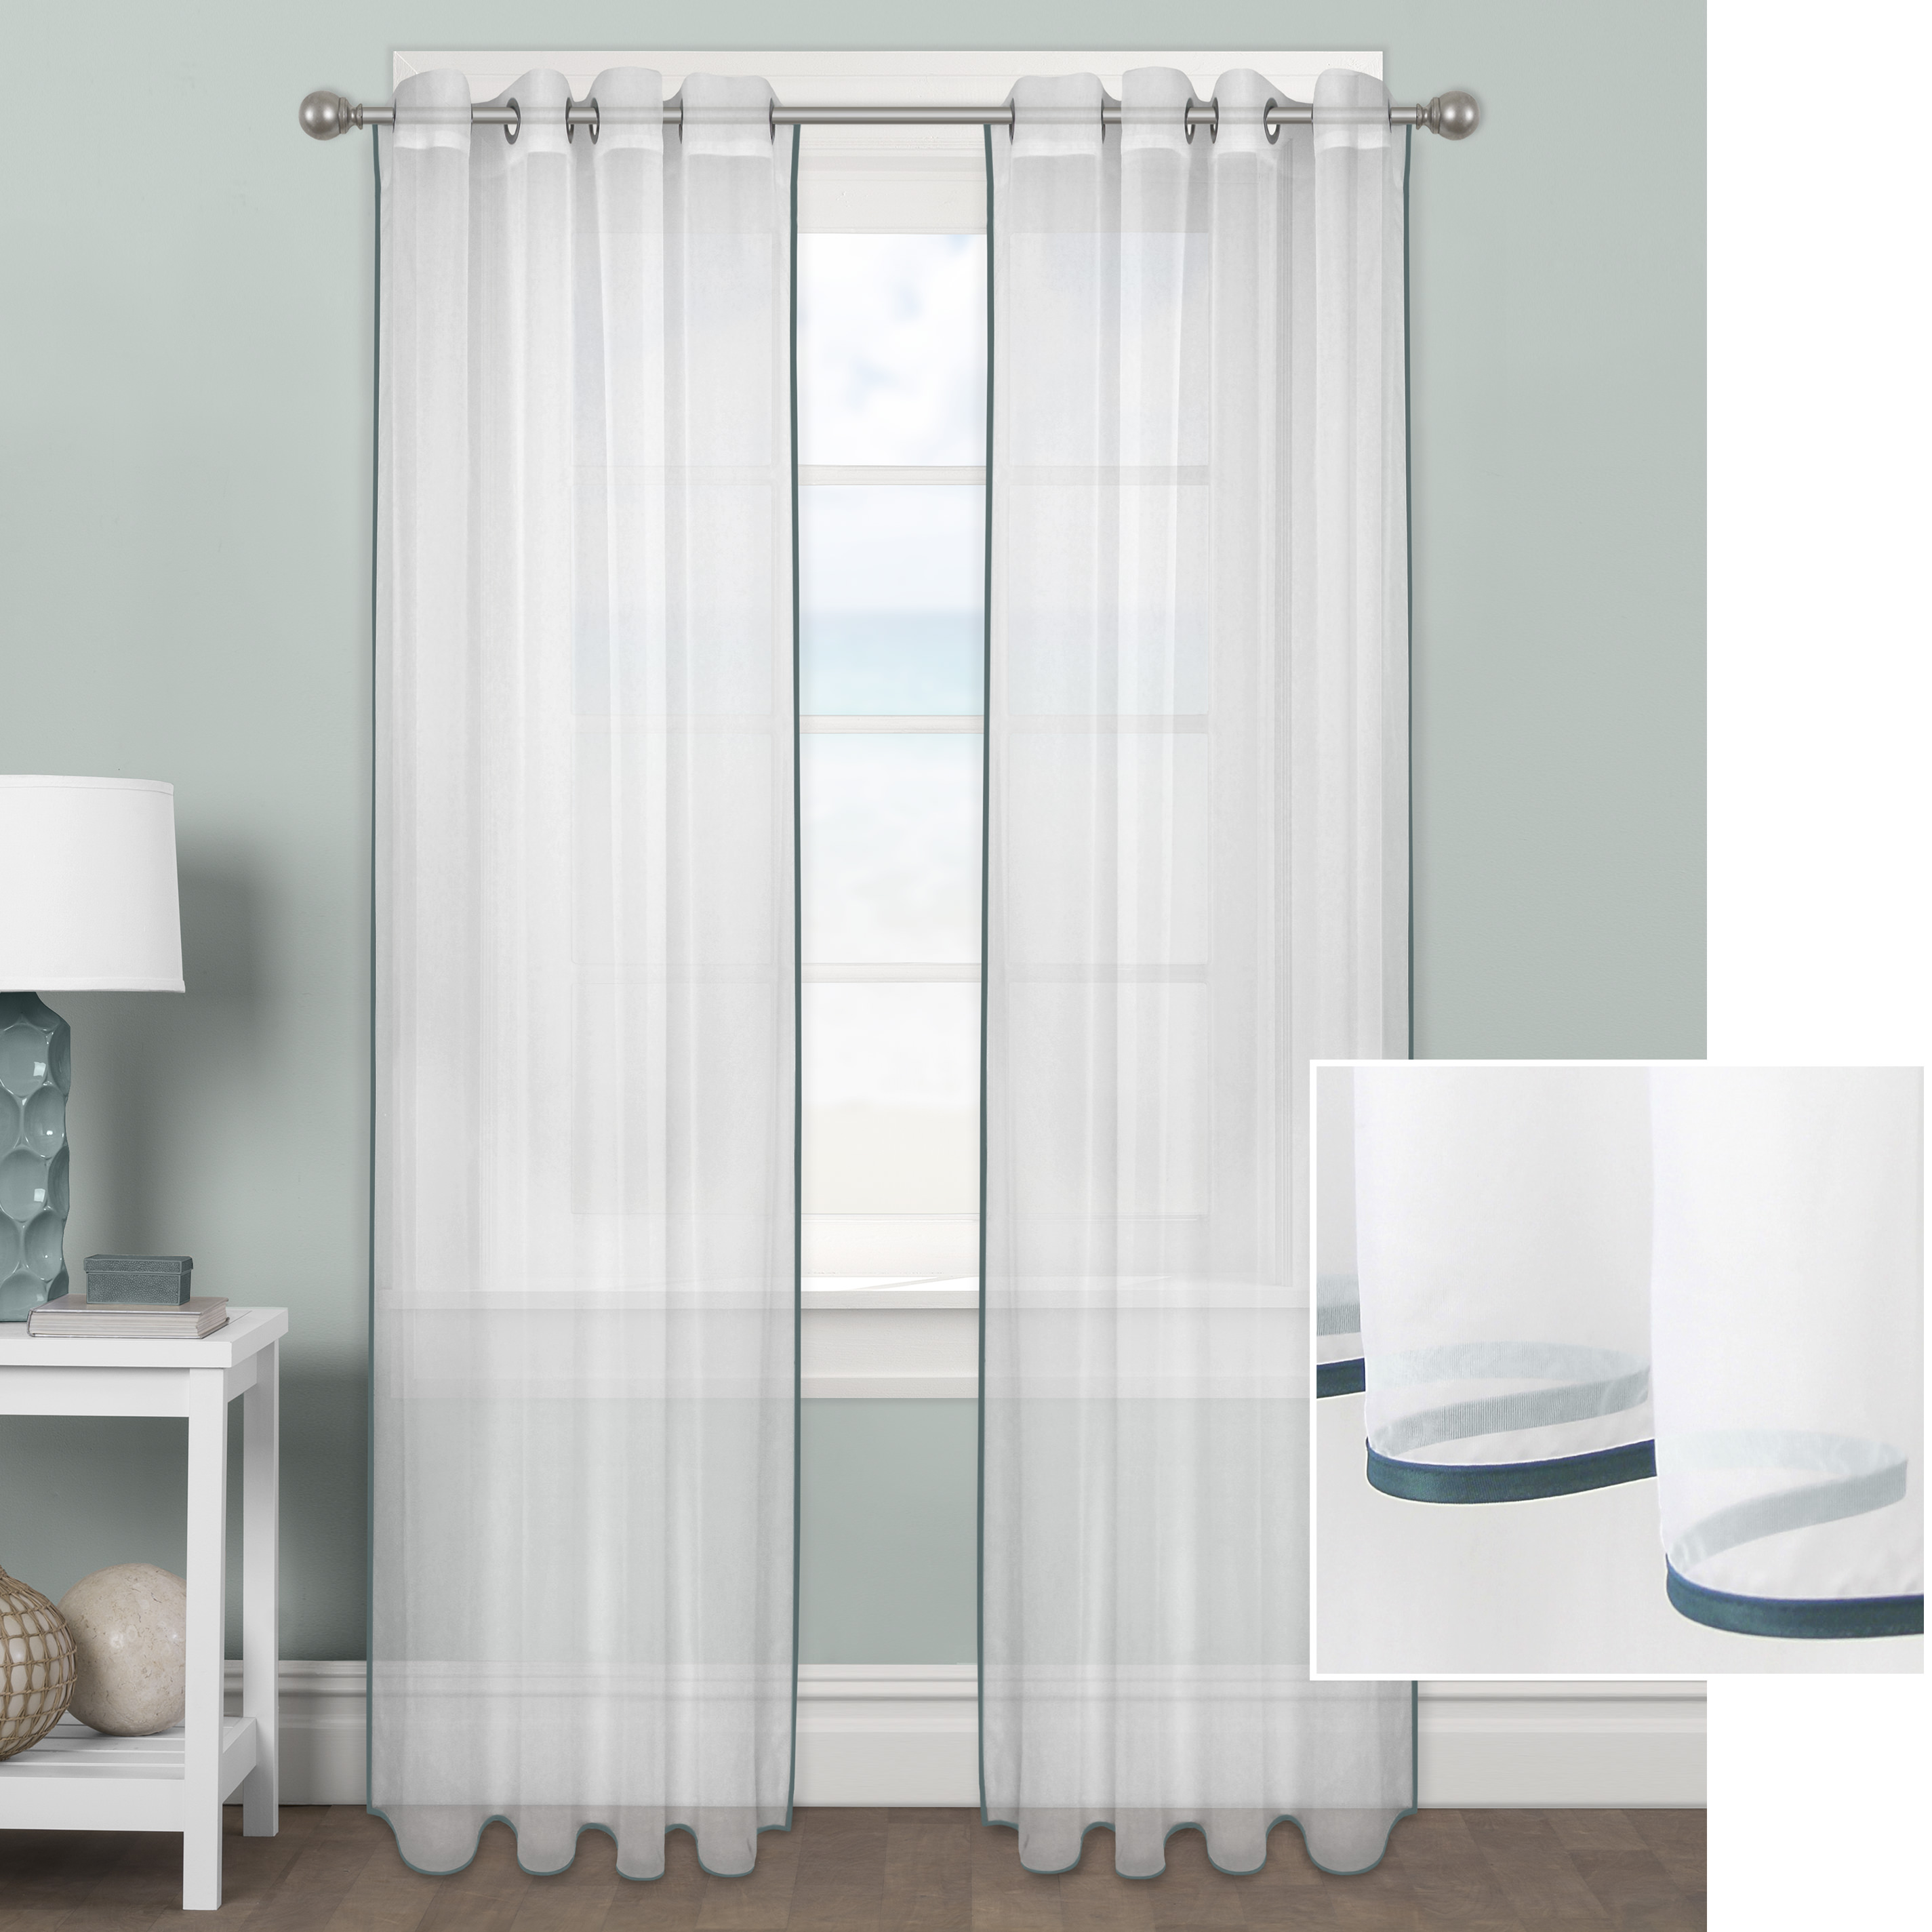 Better Homes & Gardens Ribbon Border Window Curtain Panel